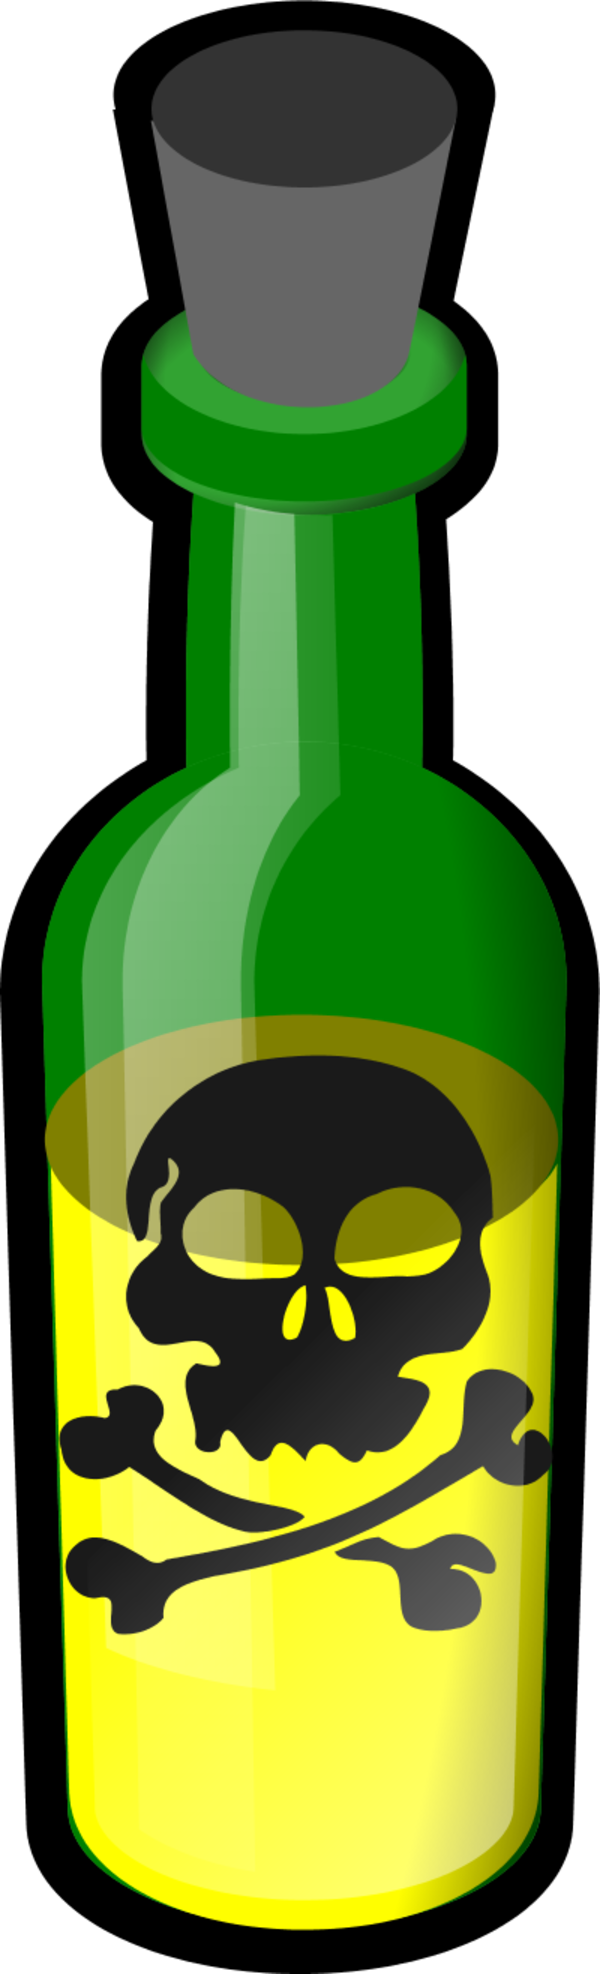 Poisoning clipart x collection. Poison bottle png